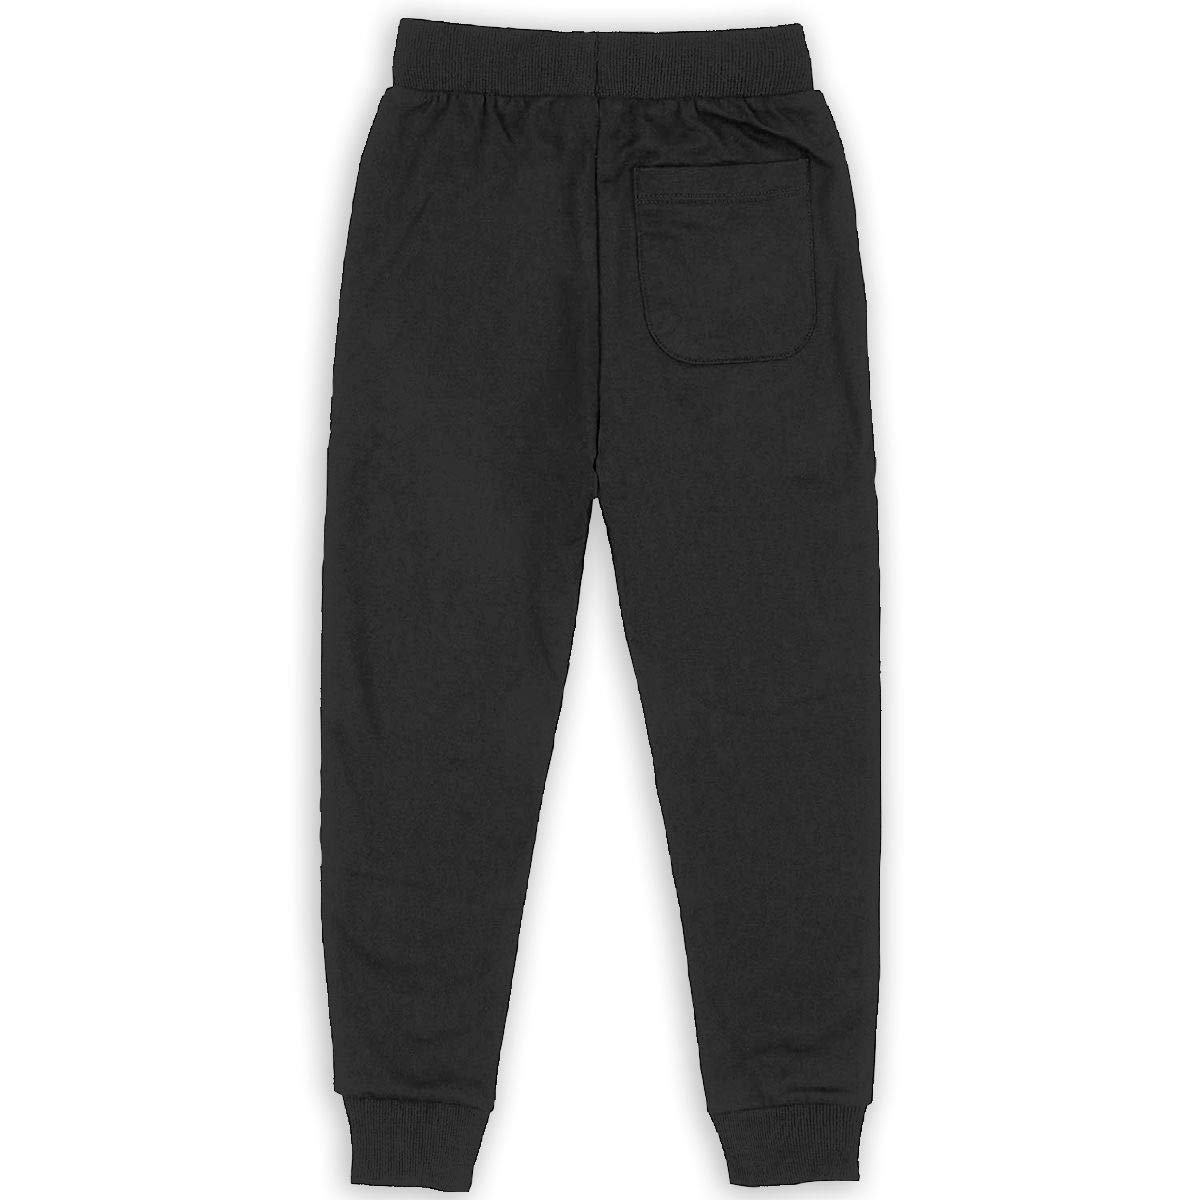 Boys Sweatpants 50th Birthday Gift Idea Joggers Sport Training Pants Trousers Black